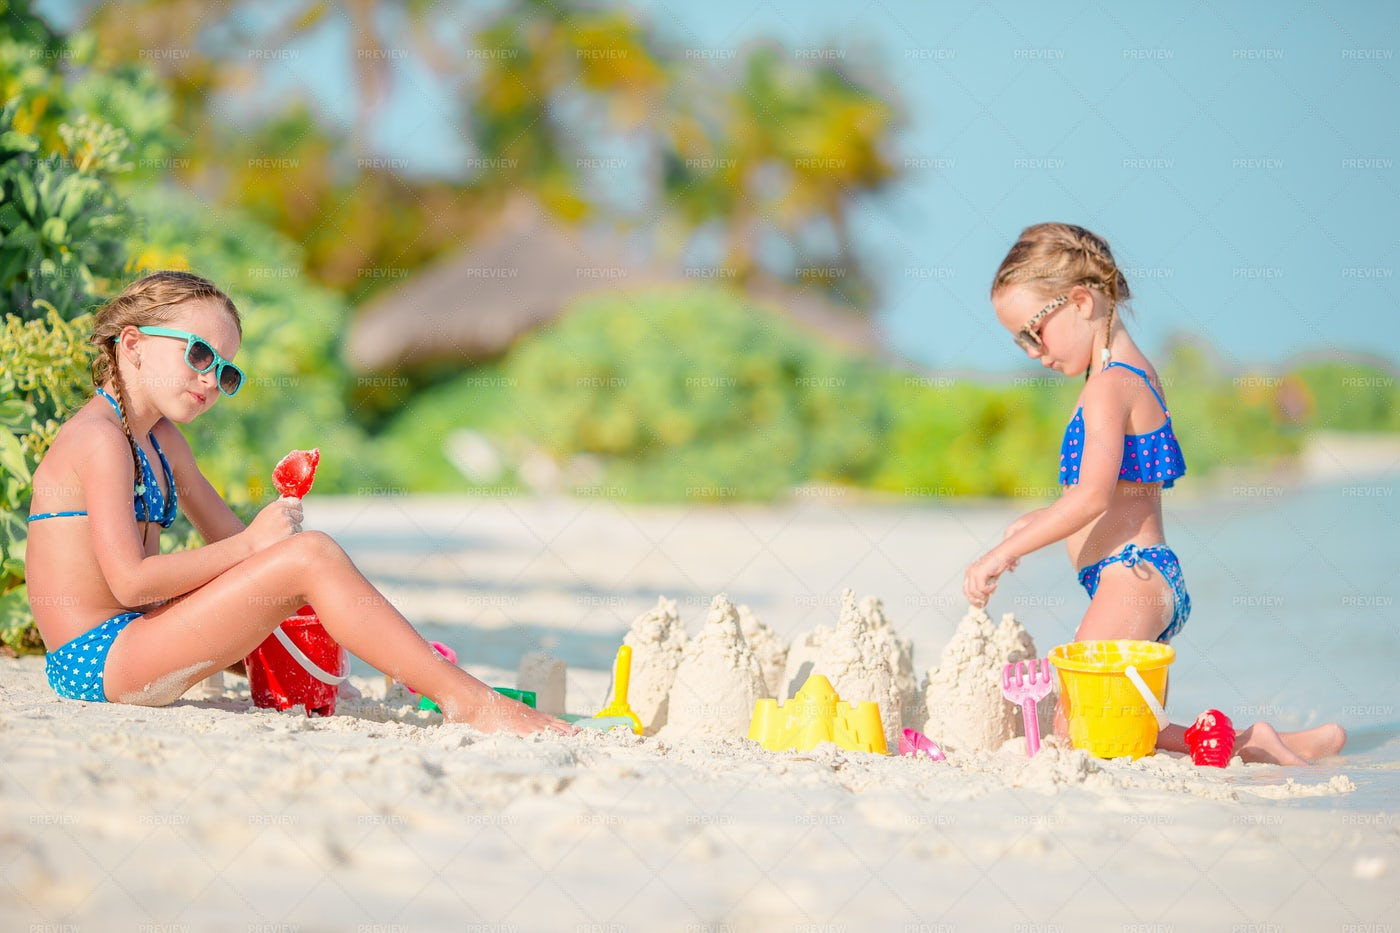 Two Girls Making A Sand Castle: Stock Photos